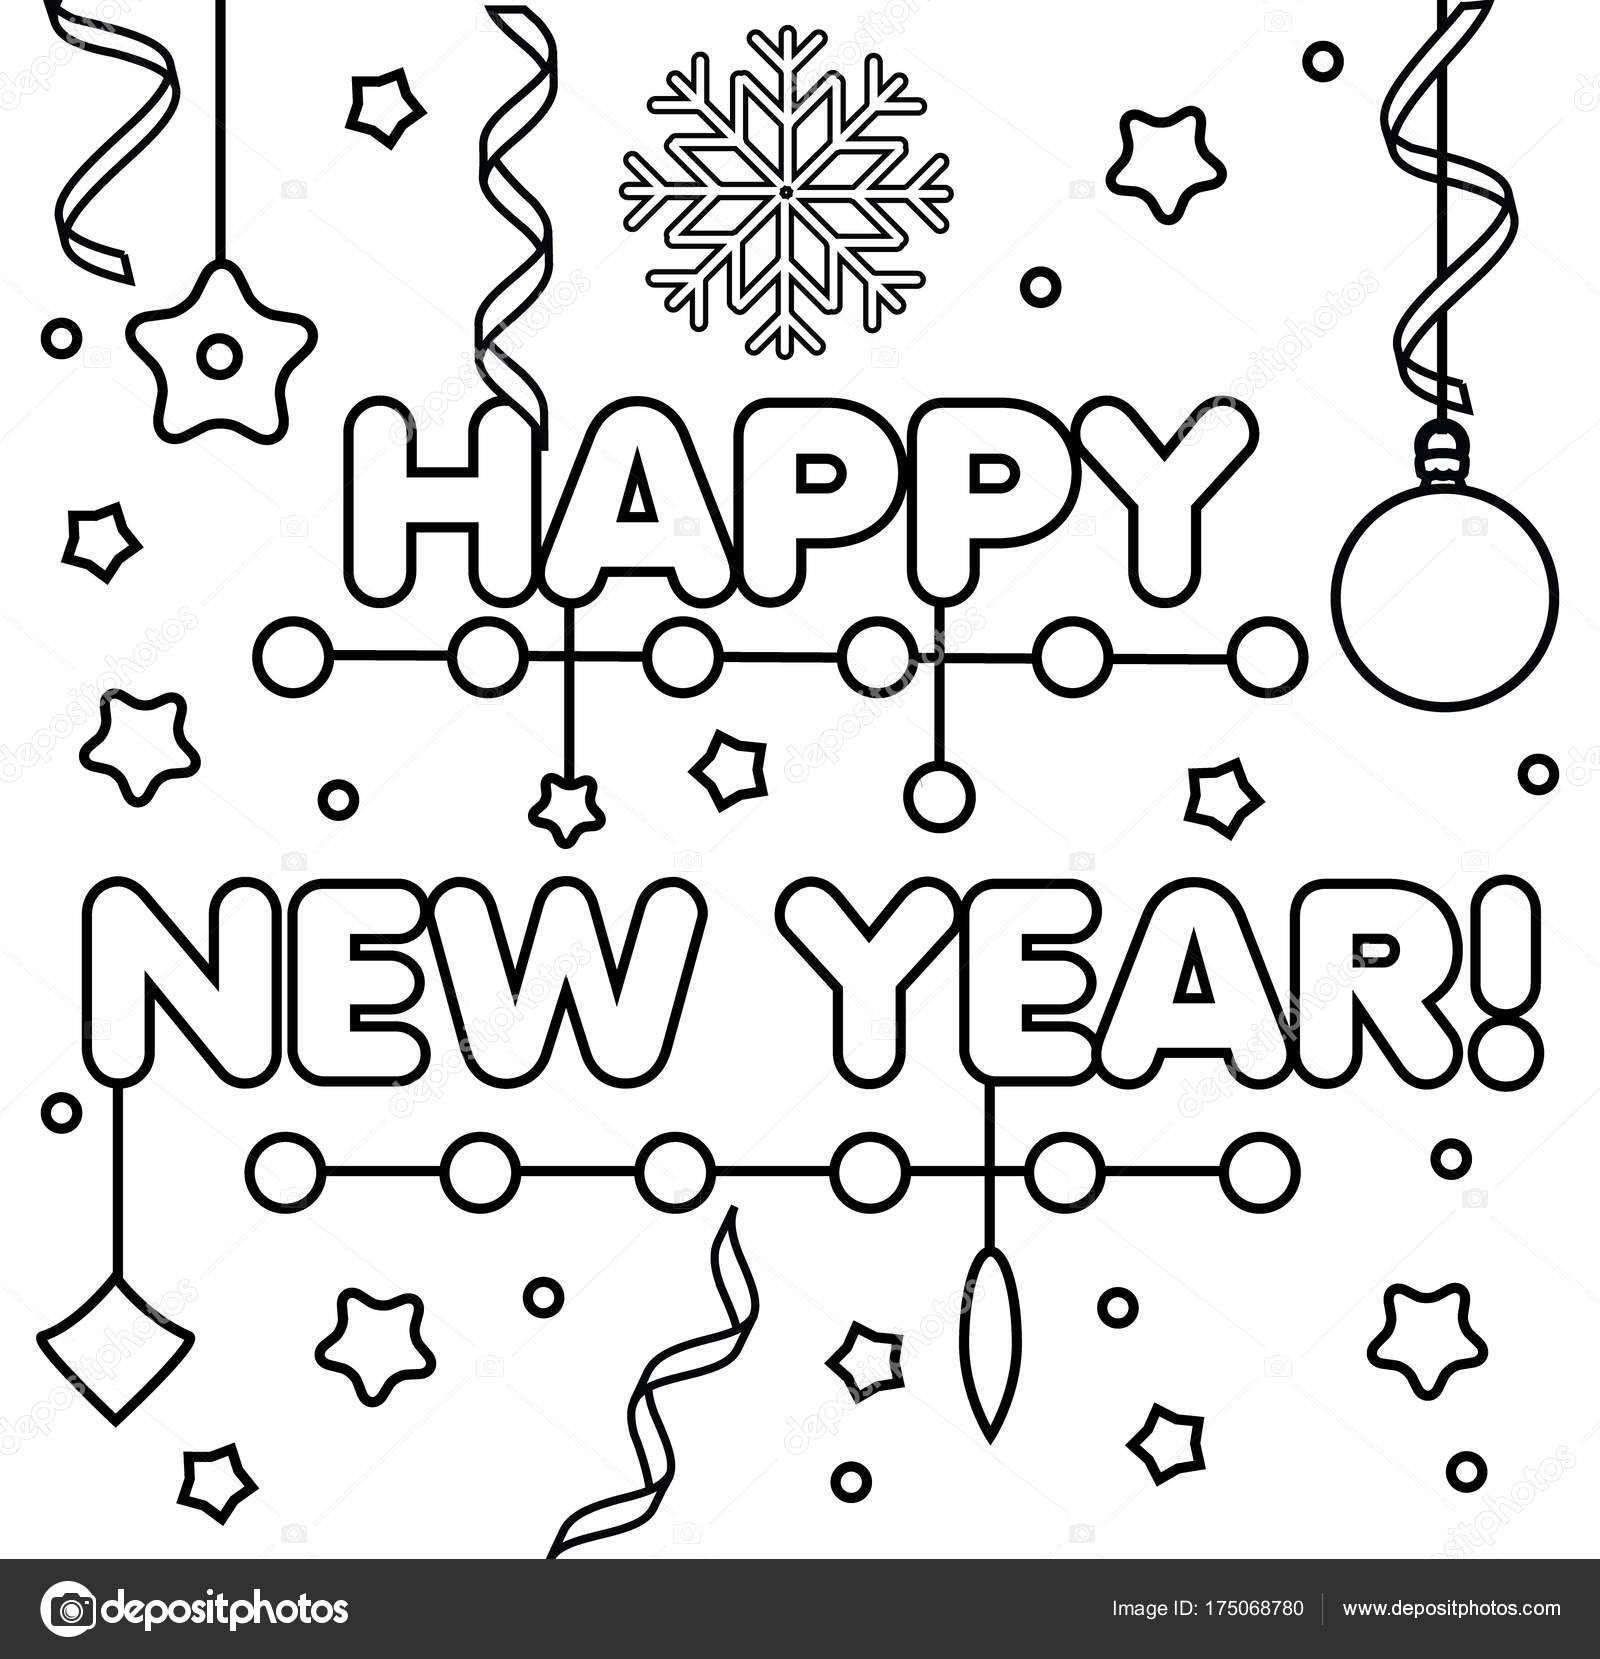 coloring page with happy new year text drawing